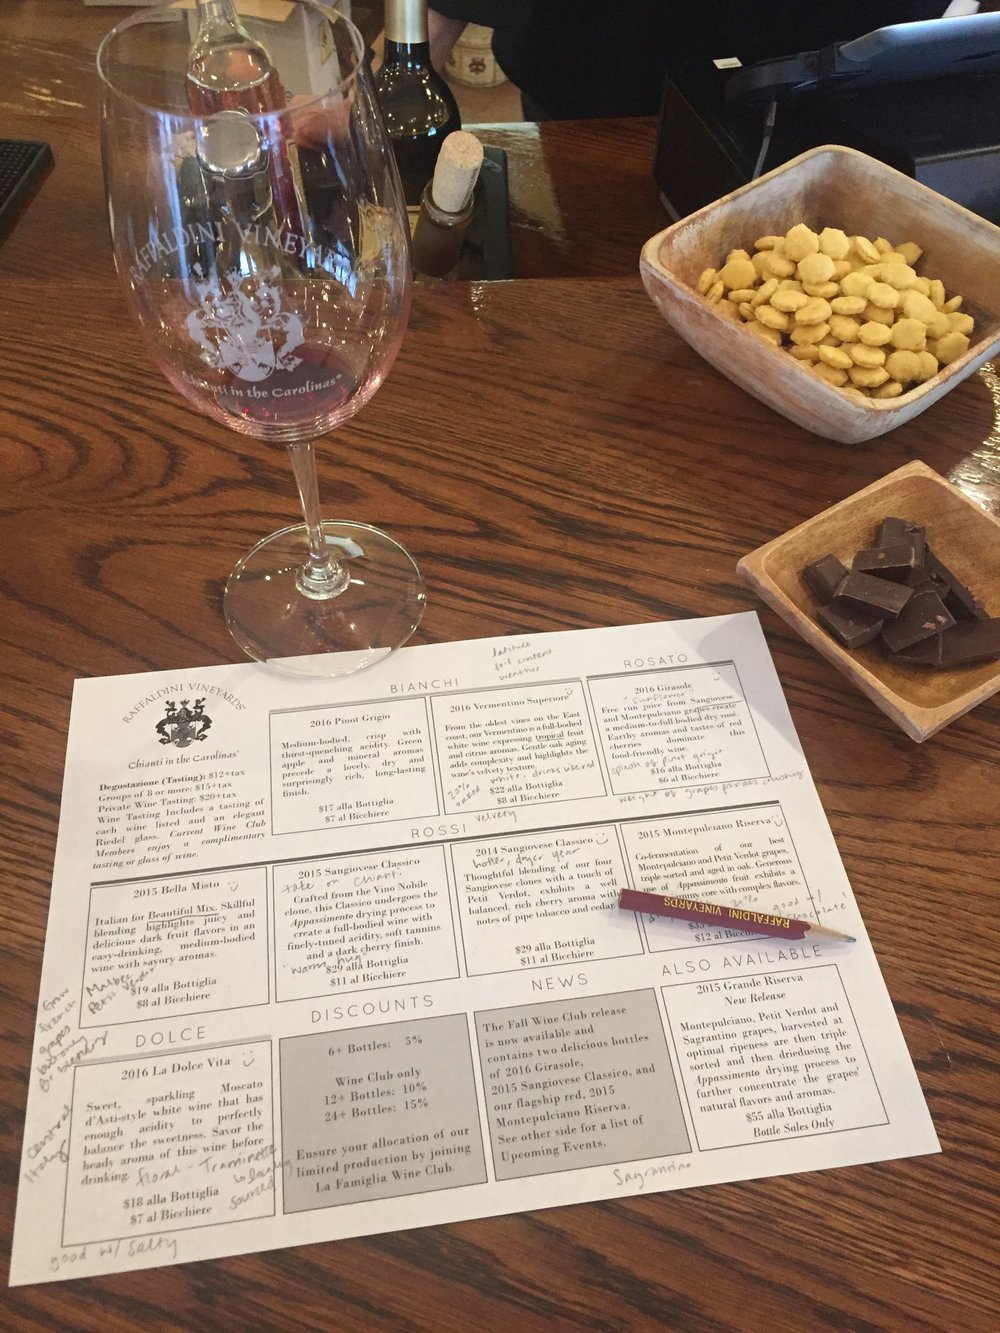 Our tasting notes